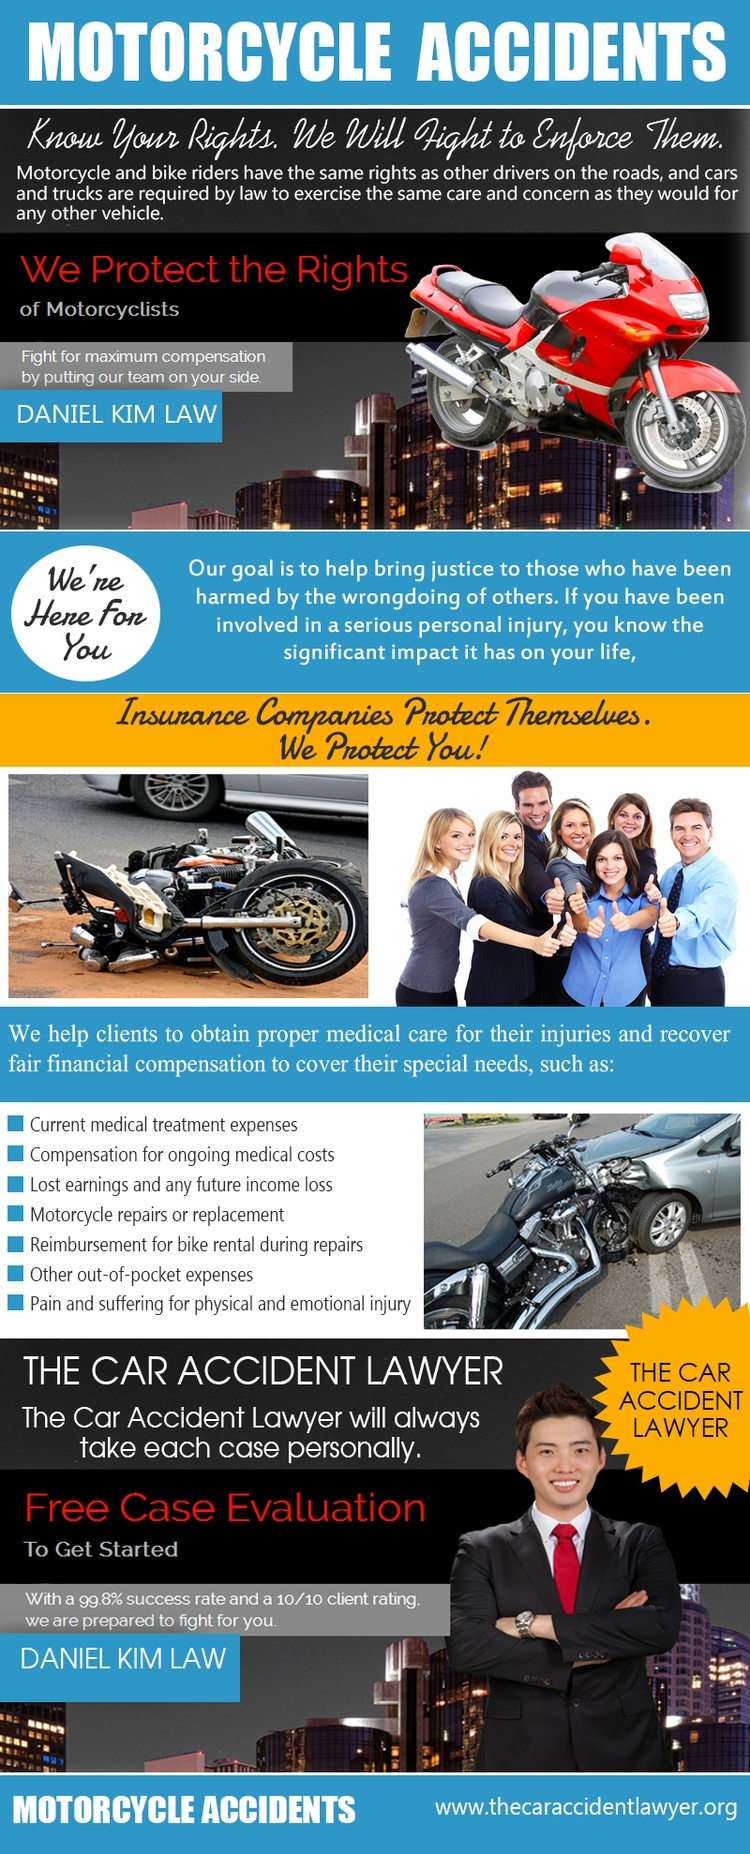 Motorcycle Accidents lawyers re - danielkimlaw | ello